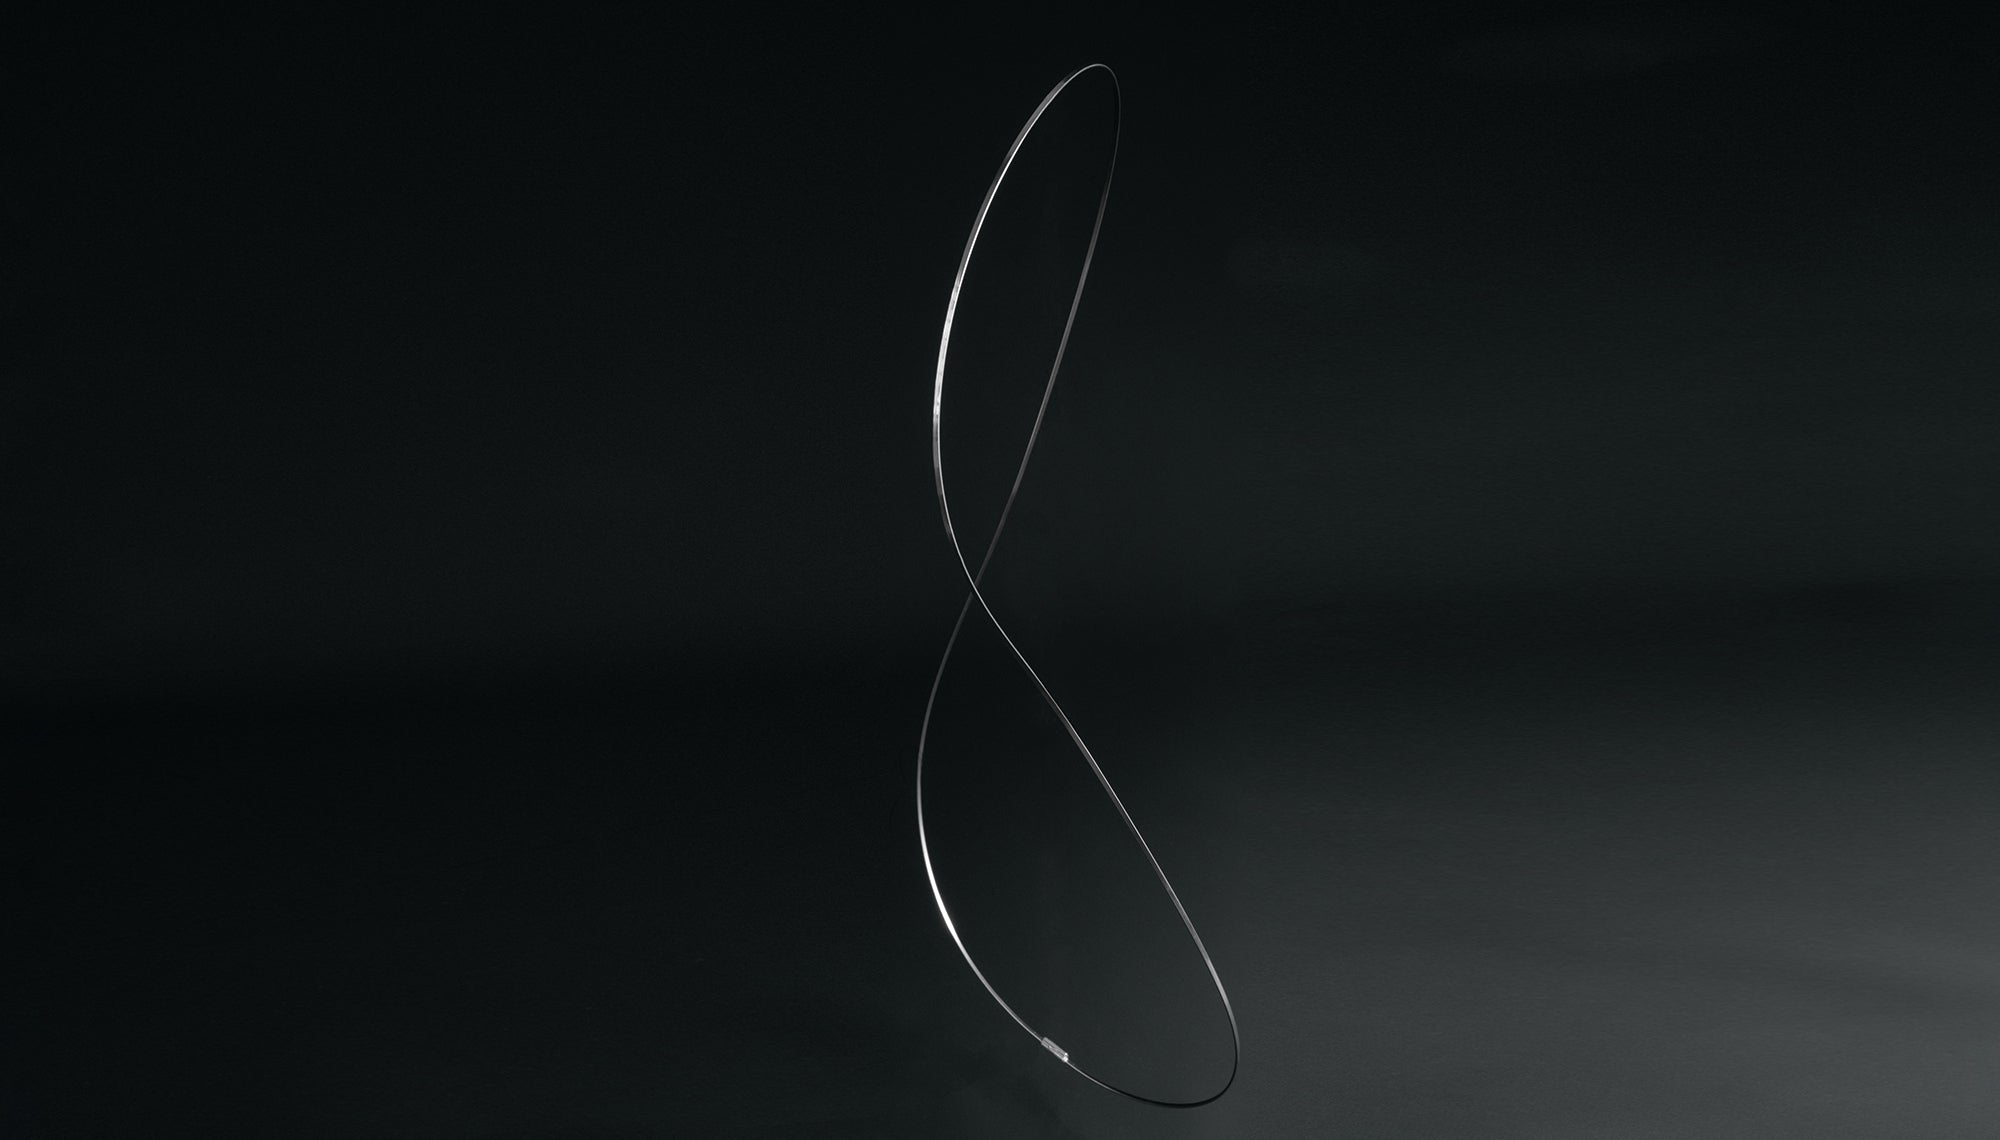 Steel frame twisted into a figure 8